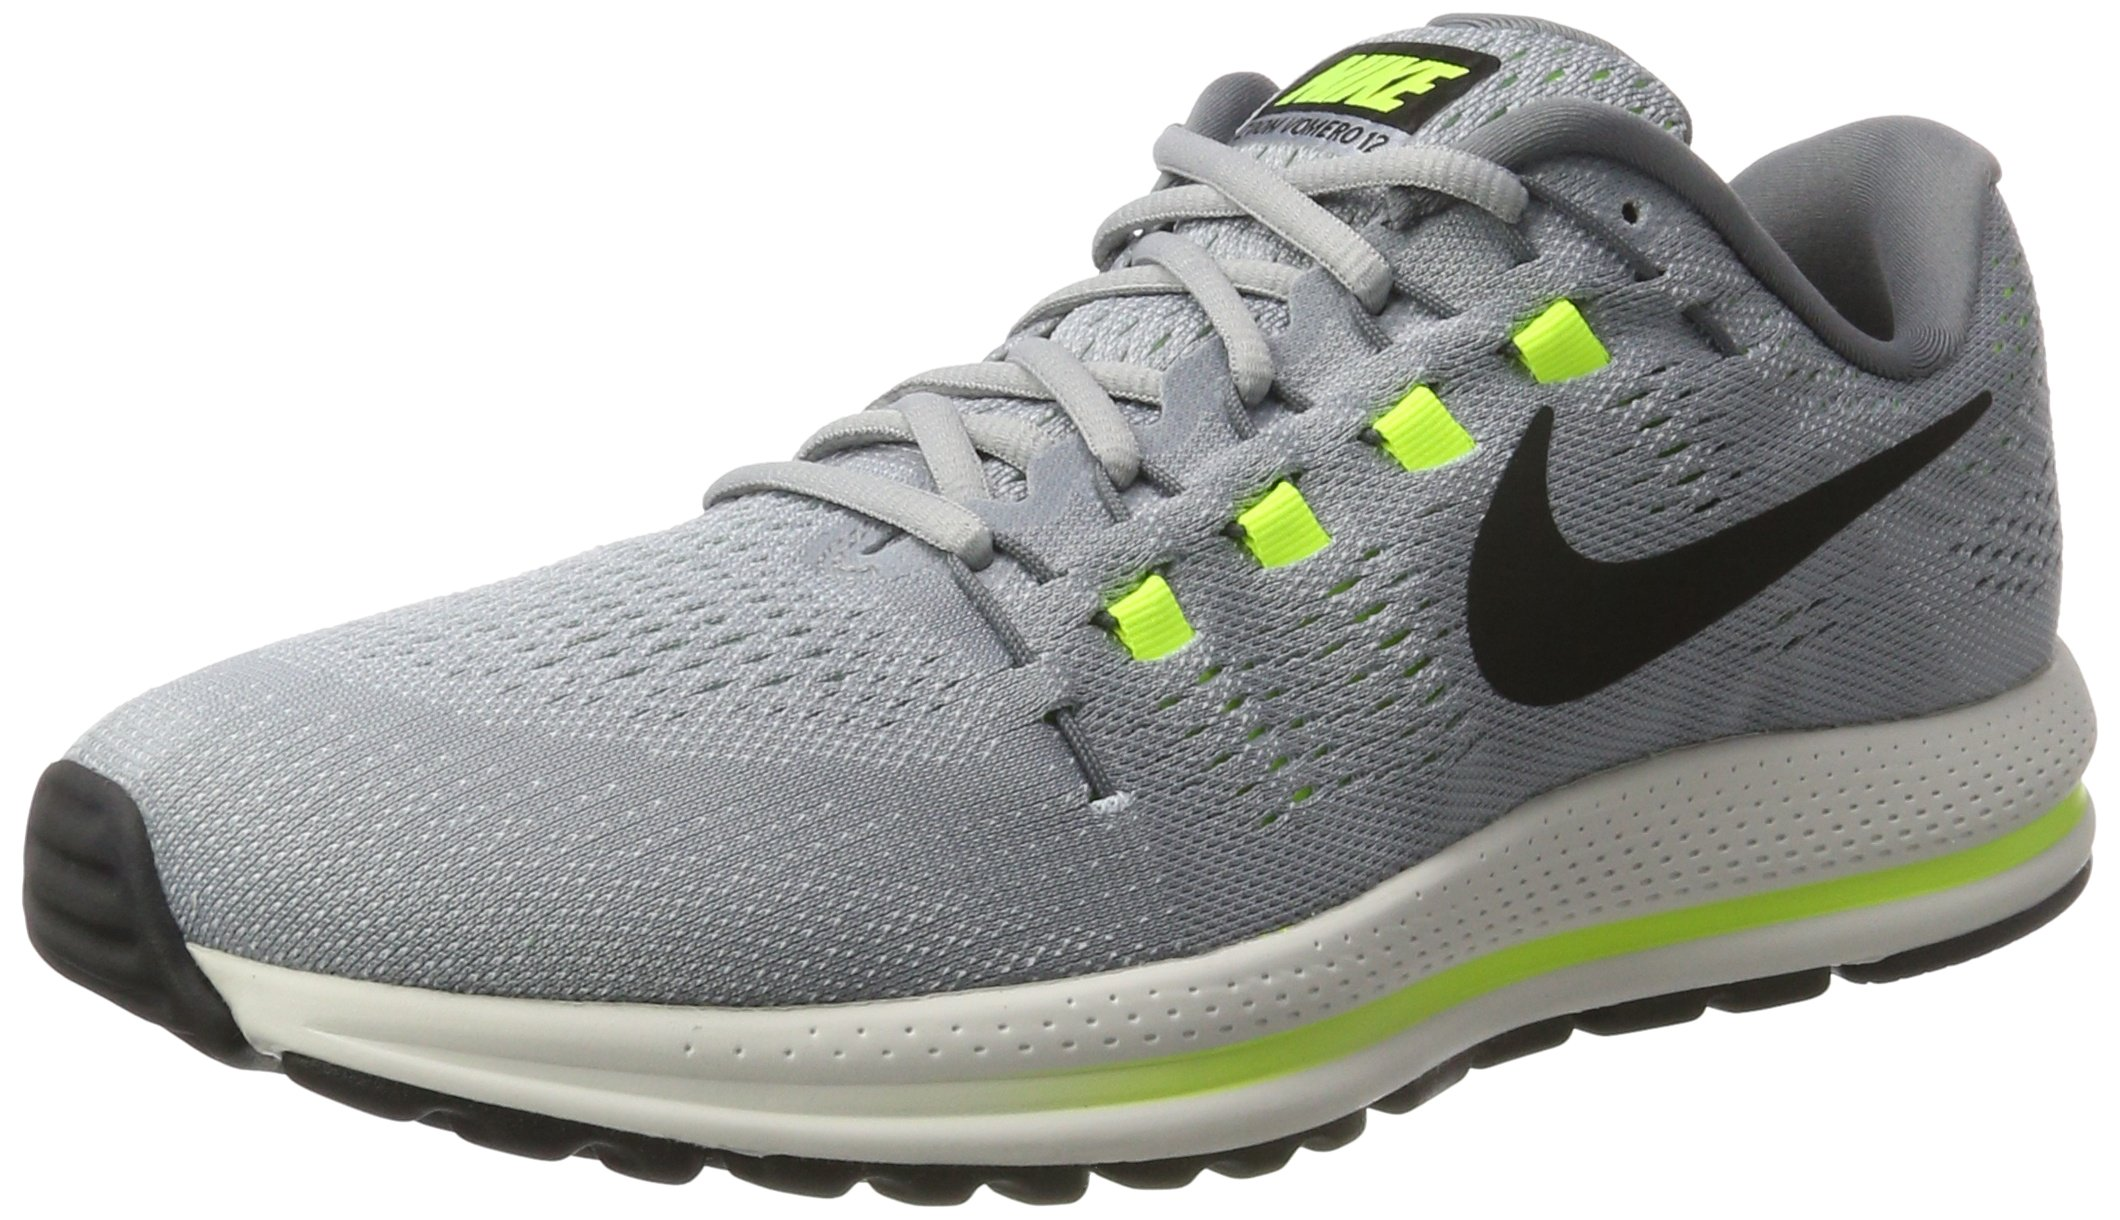 Galleon - Nike Men s Air Zoom Vomero 12 Running Shoes Wolf Grey Black  863762 002 Size 7 D(M) US 622103610